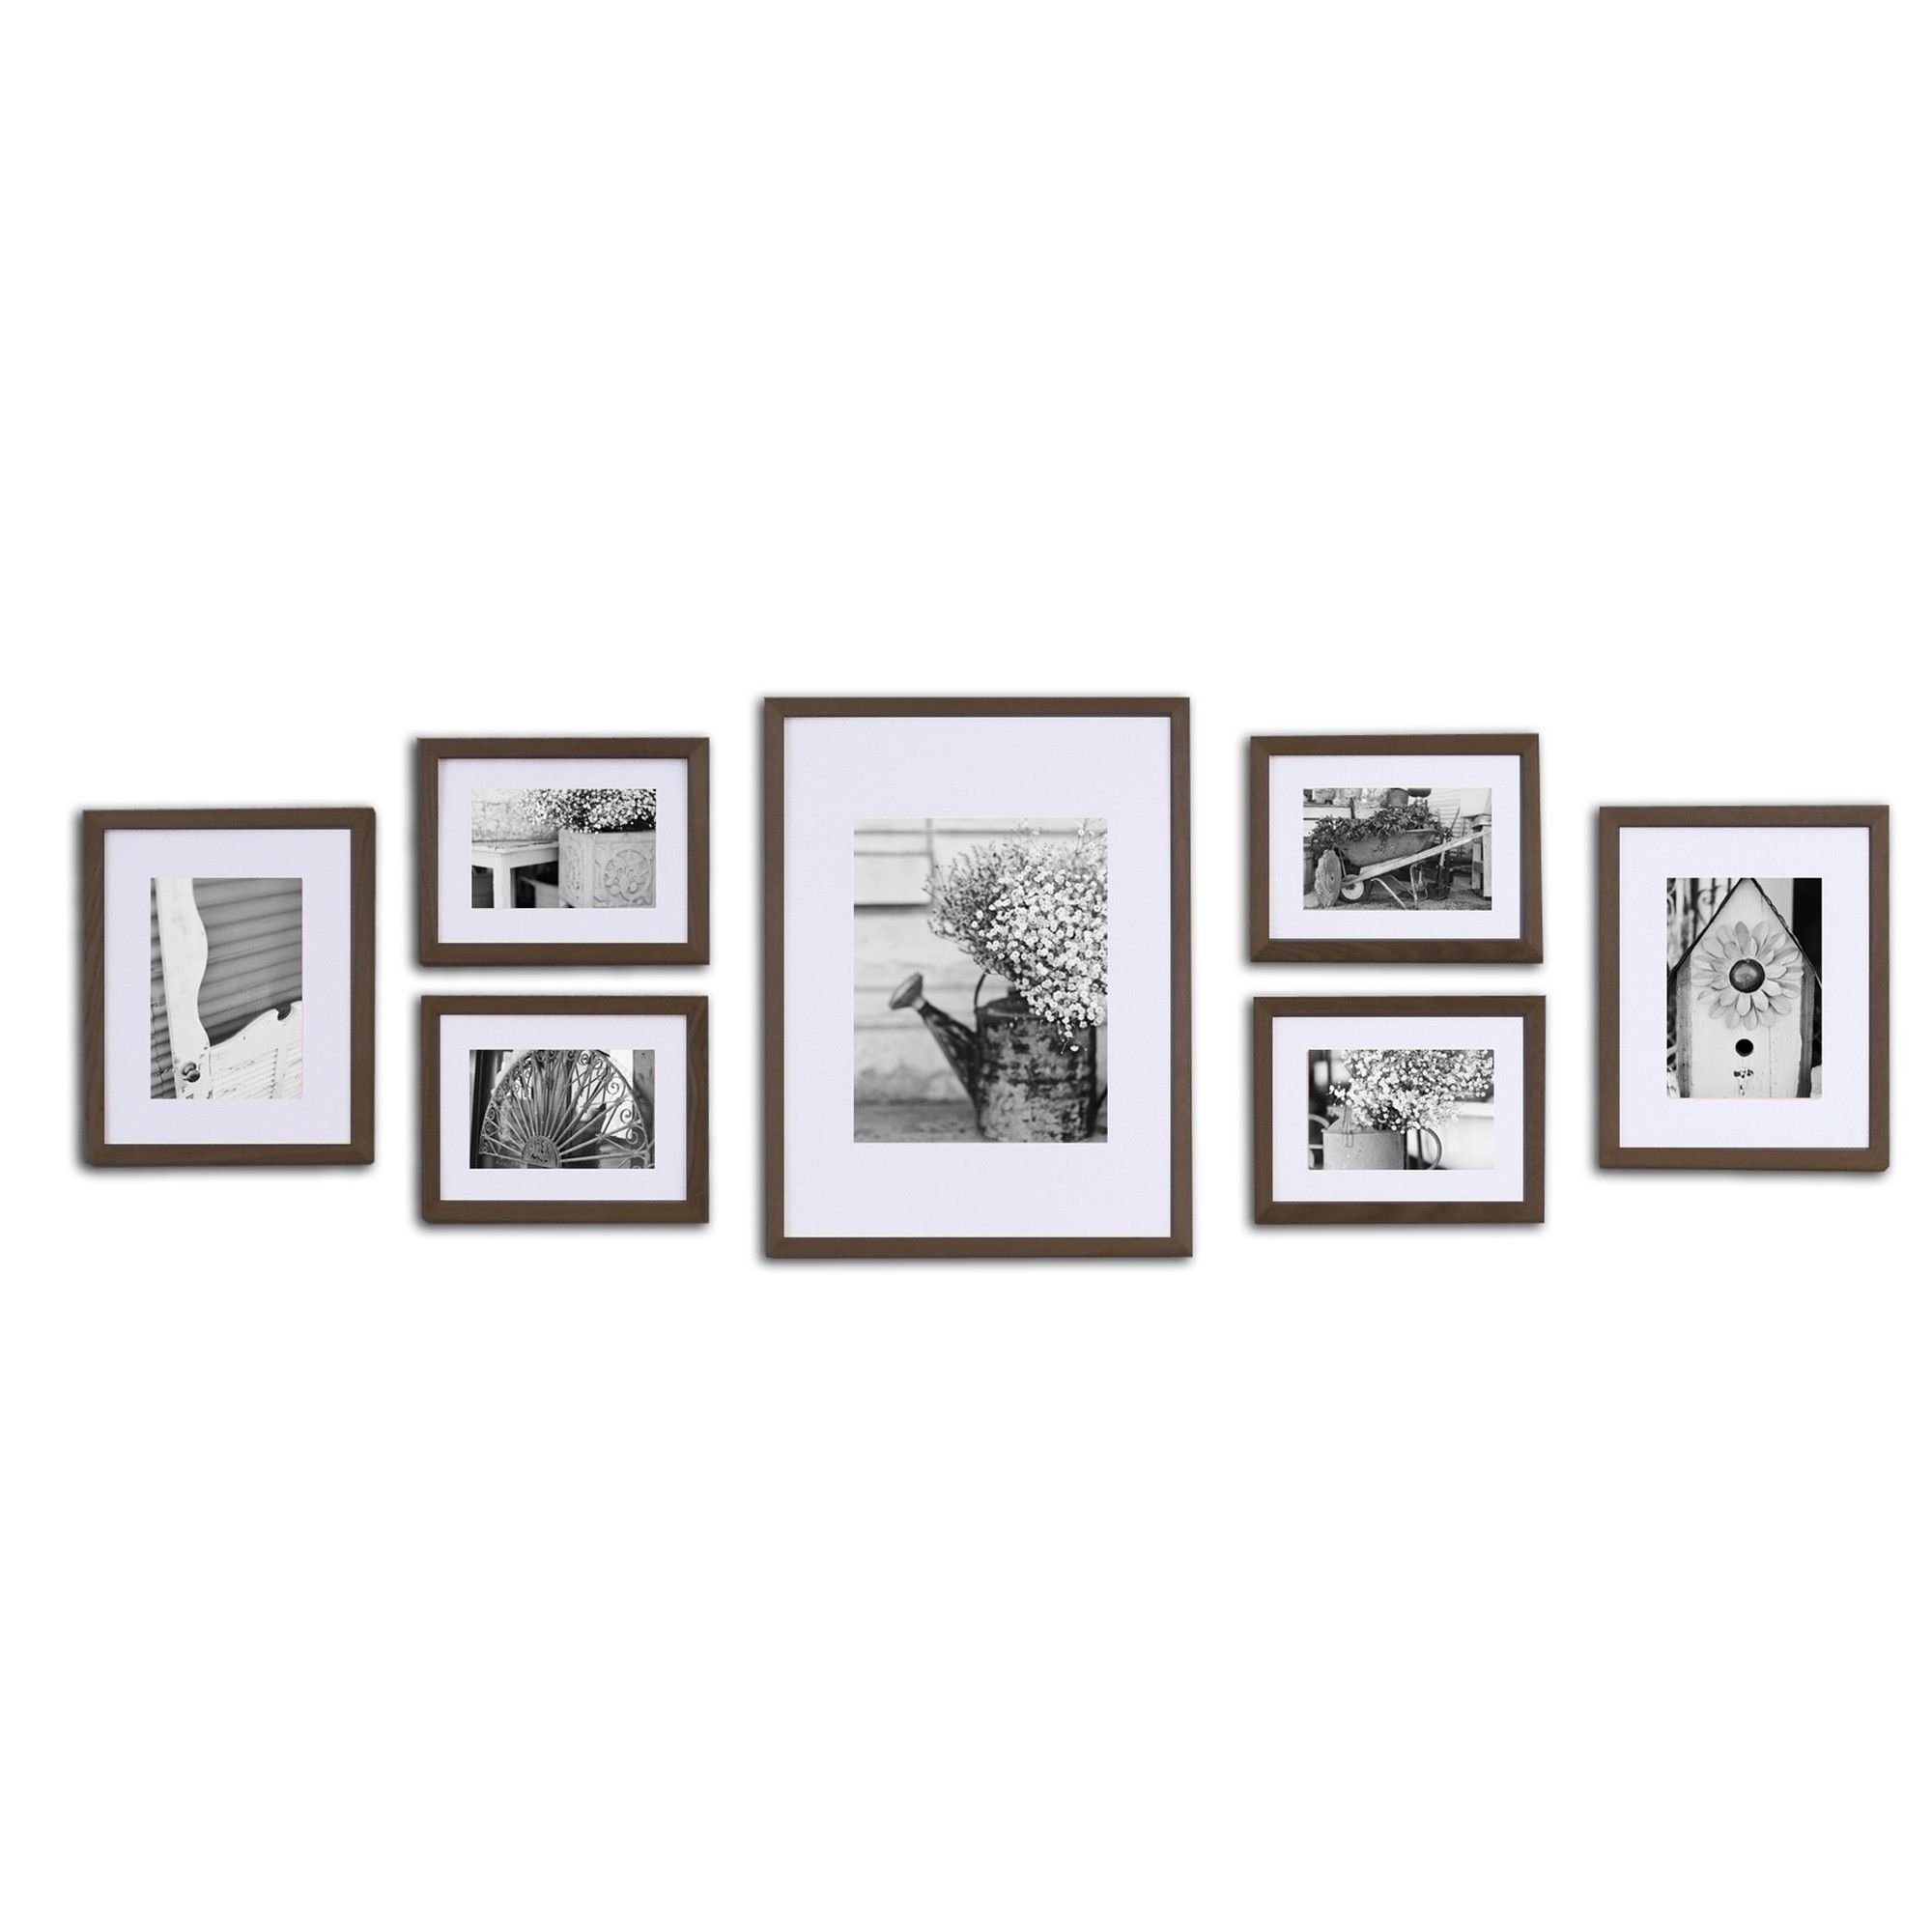 Features solid wood 7 piece wall frame set with usable artwork pinnacle black solid wood wall frame kit black solid wood wall frame set with usable artwork includes frames matted to 2 jeuxipadfo Images